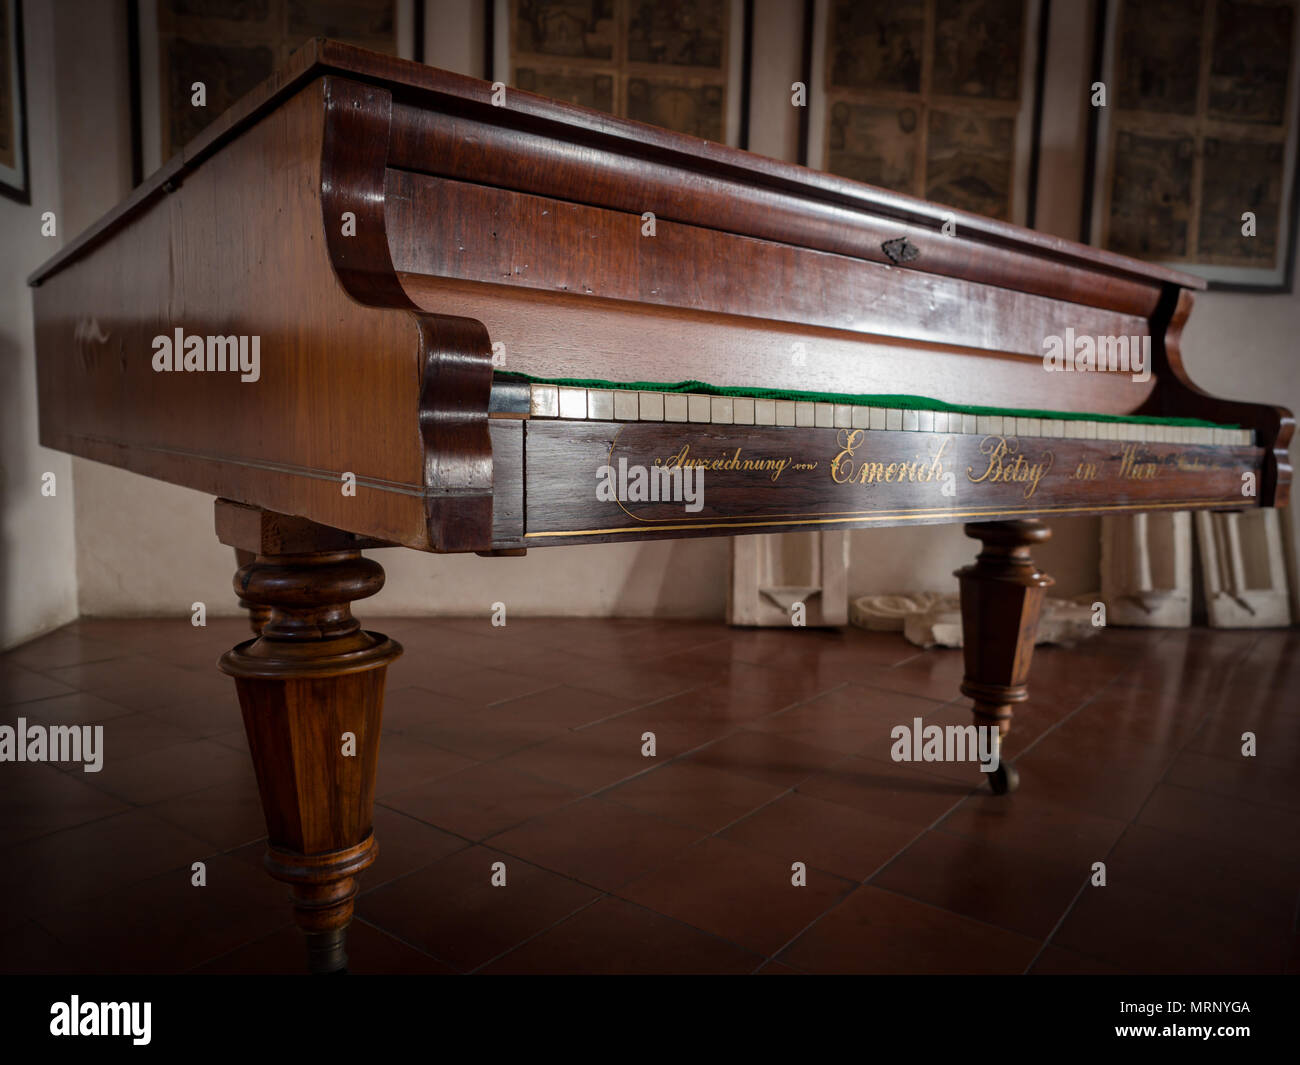 Antique Emerich Betsy piano constructed in 1854. These pianos were made with Burl Wood, each finished with hand craftsmanship inclusive of hand-carved - Stock Image